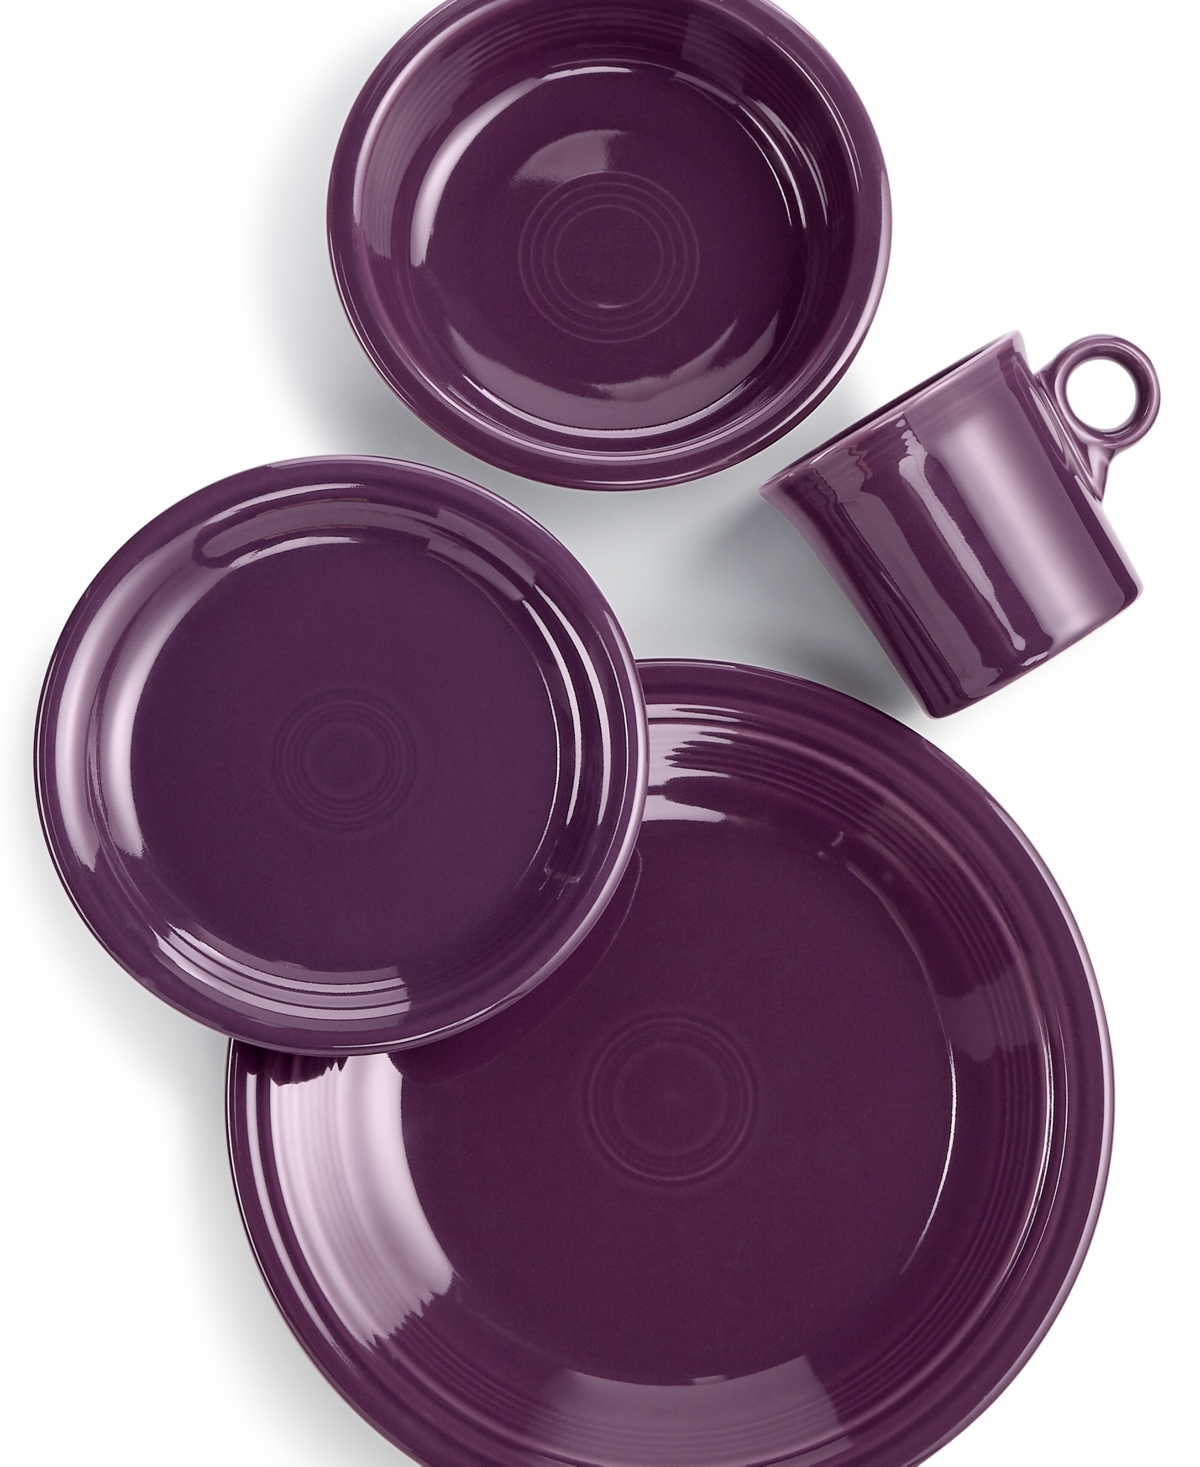 mulberry 4 pc place setting